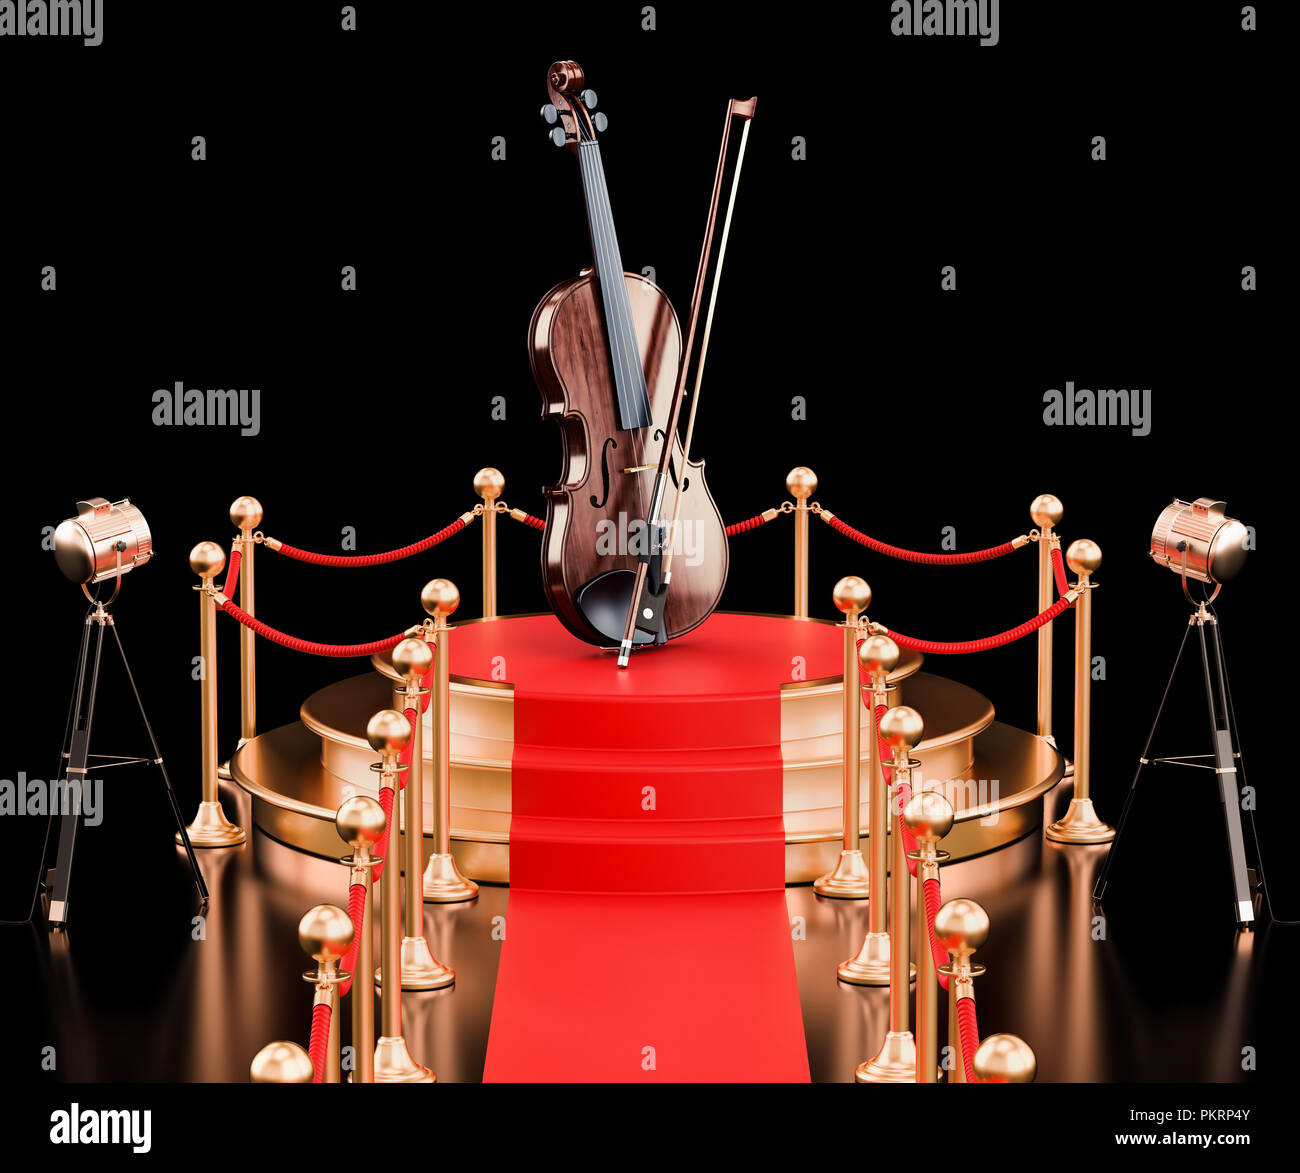 Podium with violin and bow, 3D rendering - Stock Image